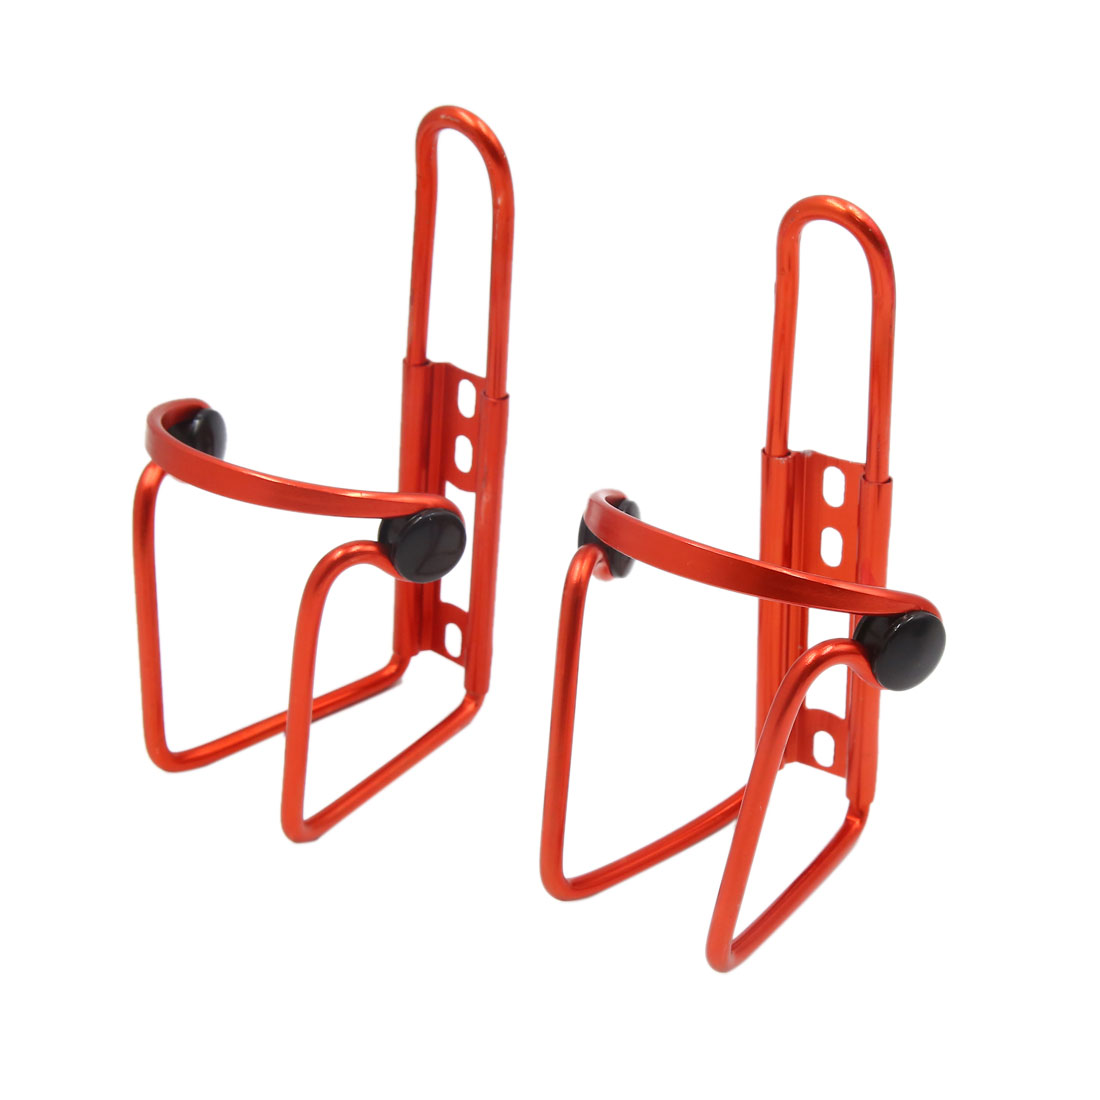 2PCS Aluminum Alloy Bike Drink Water Bottle Cup Holder MTB Bike Bicycle Cages